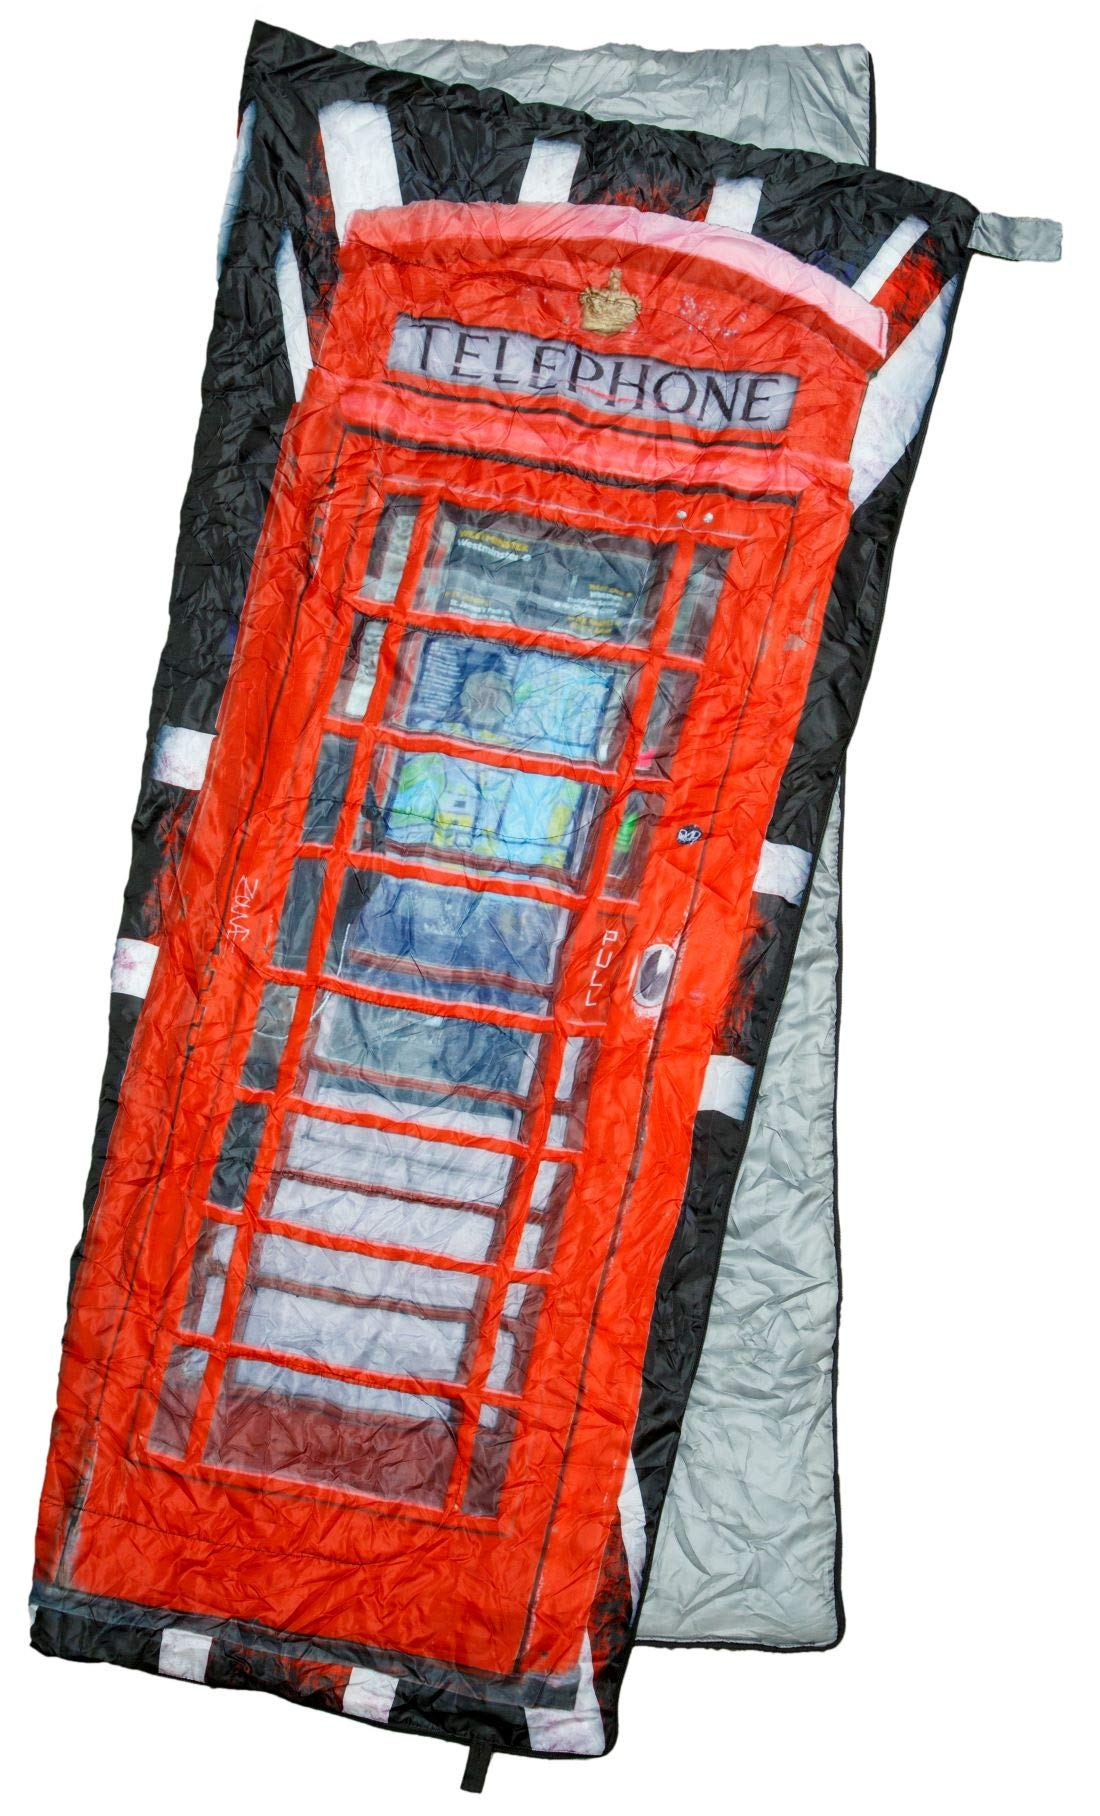 REVALCAMP Lightweight Sleeping Bag - Phonebooth - Indoor & Outdoor use. Great for Kids, Teens & Adults. Ultra Light and Compact Bags are Perfect for Hiking, Backpacking, Camping & Travel.